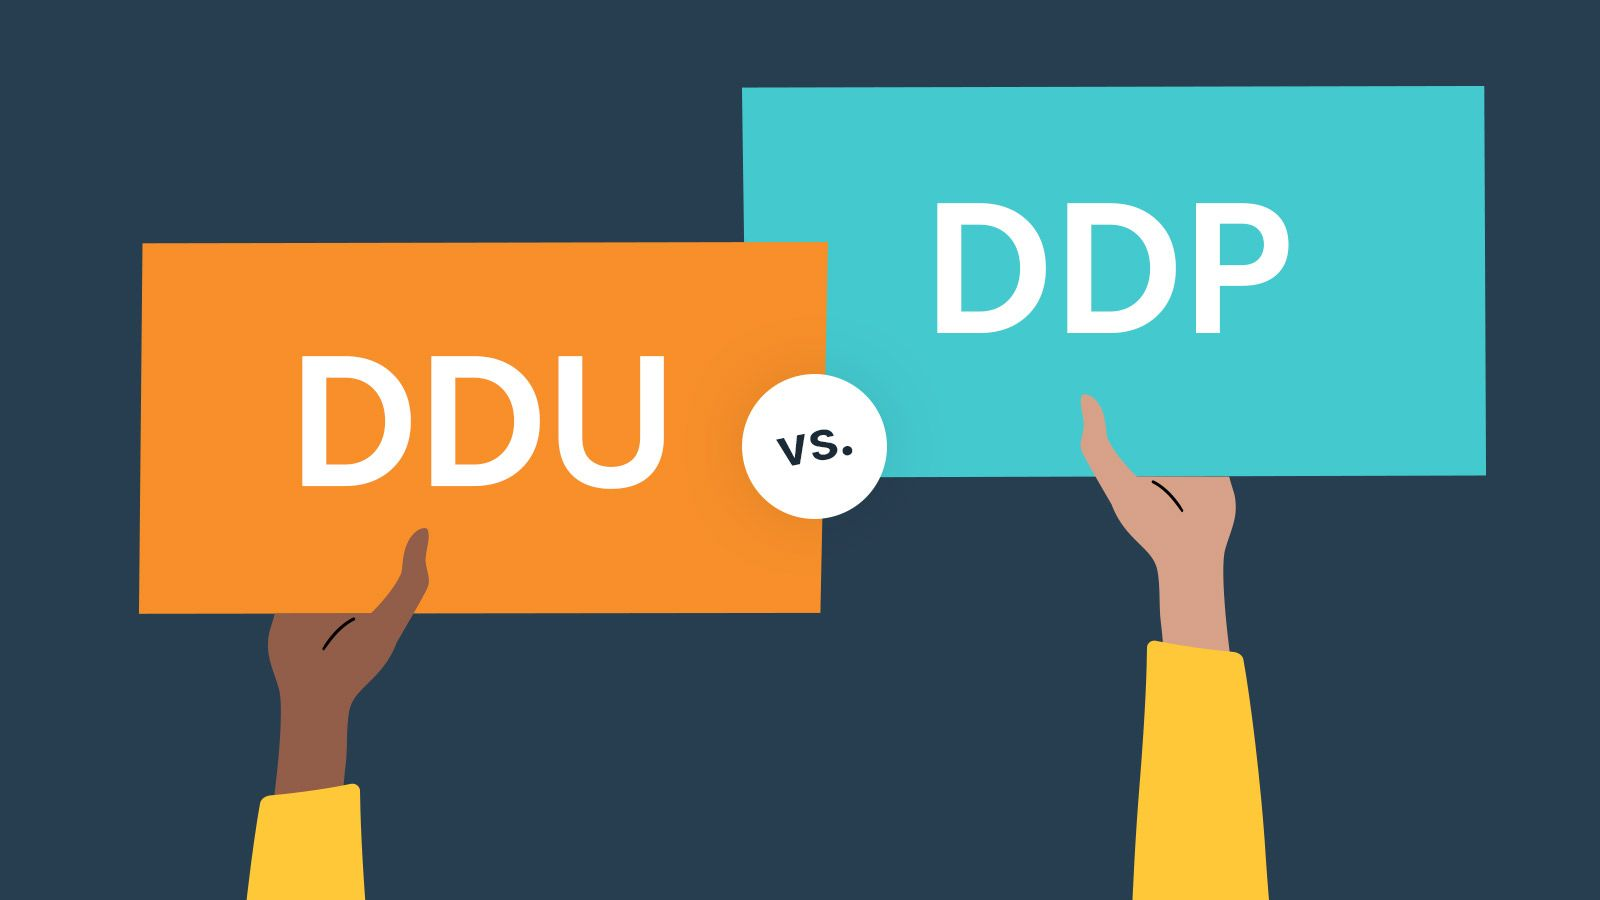 DDU vs DDP - Understanding the differences in Terms of Shipping